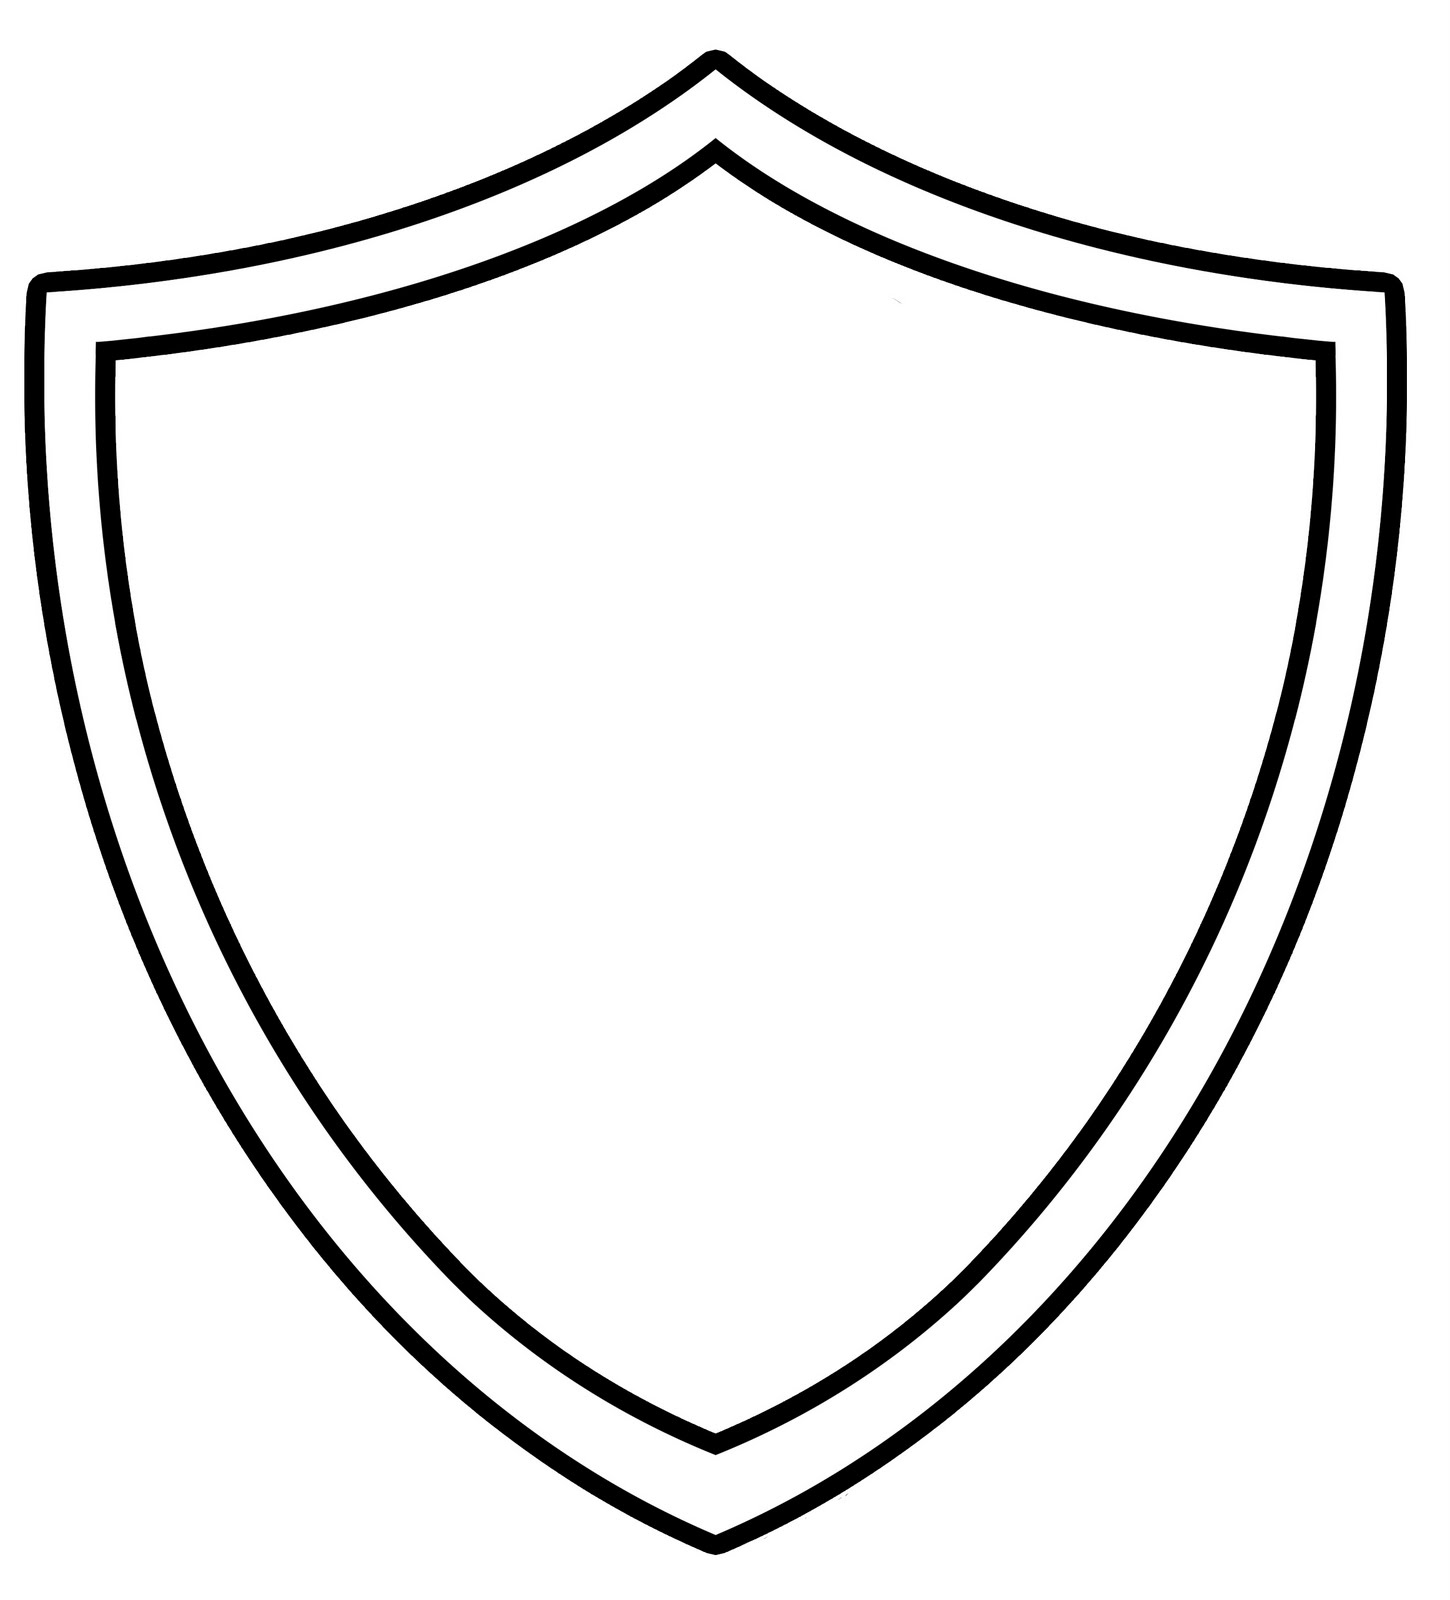 Ctr Shield Free Images At Clker